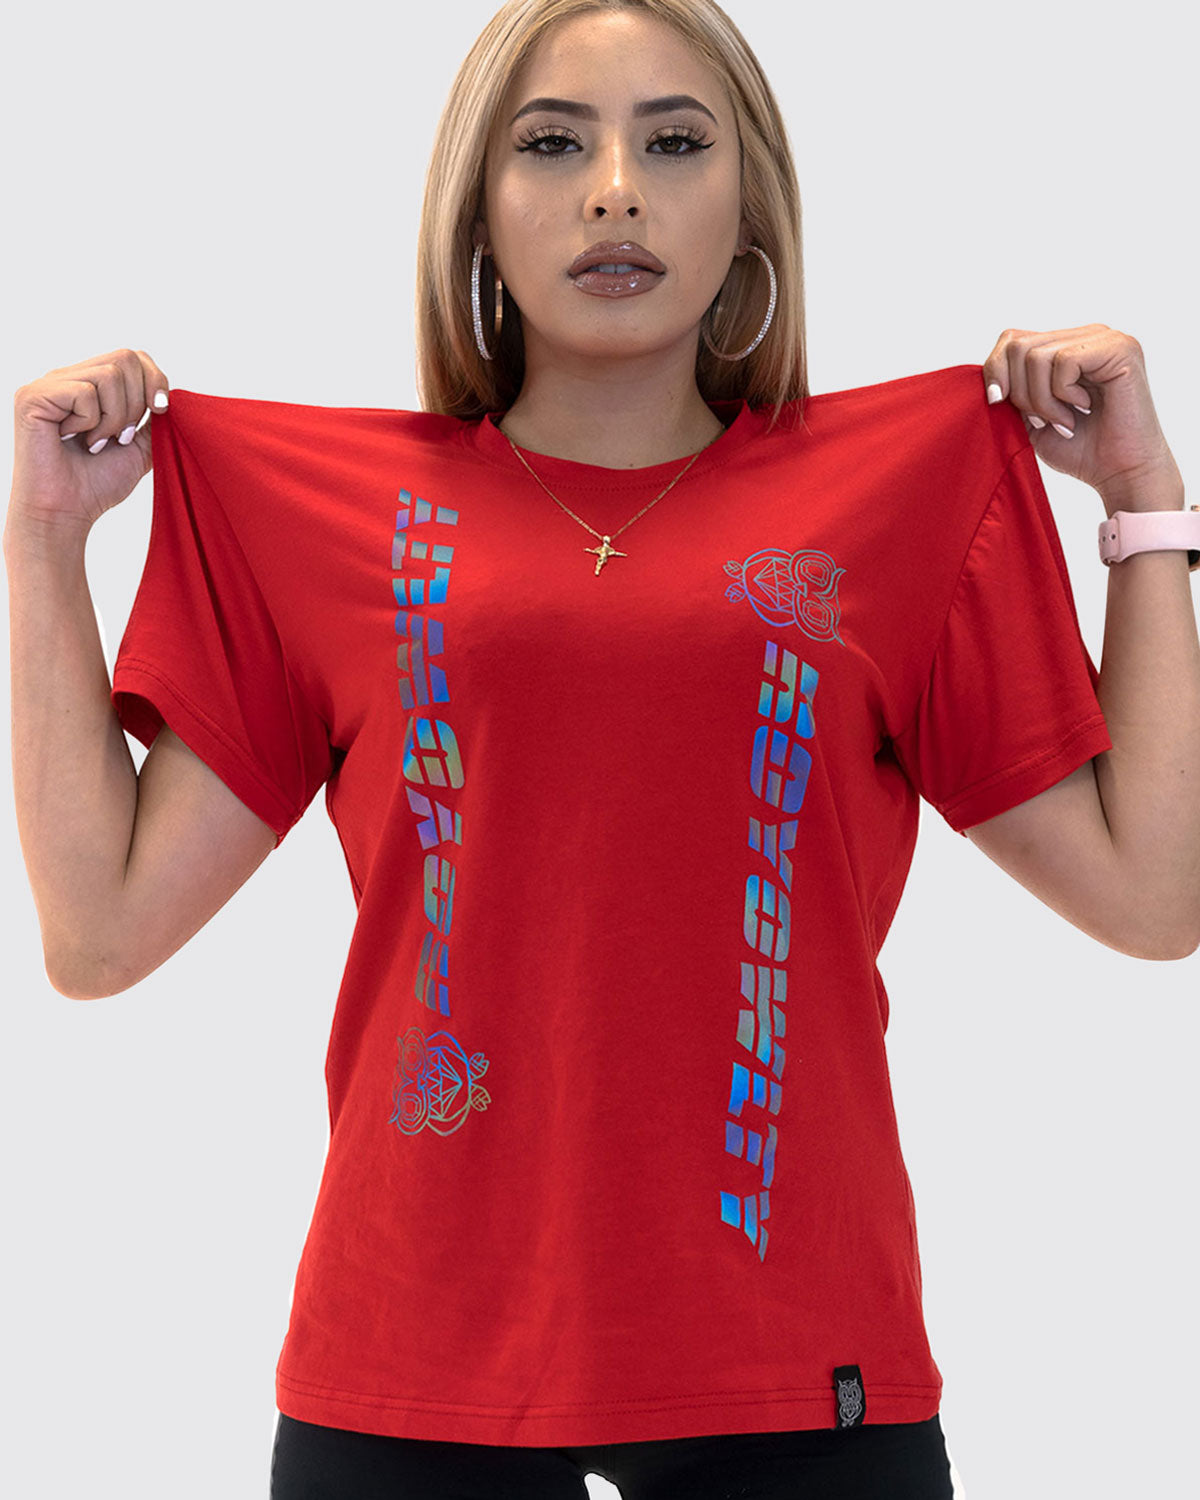 Rainbow Reflective Oversized Tee- Red